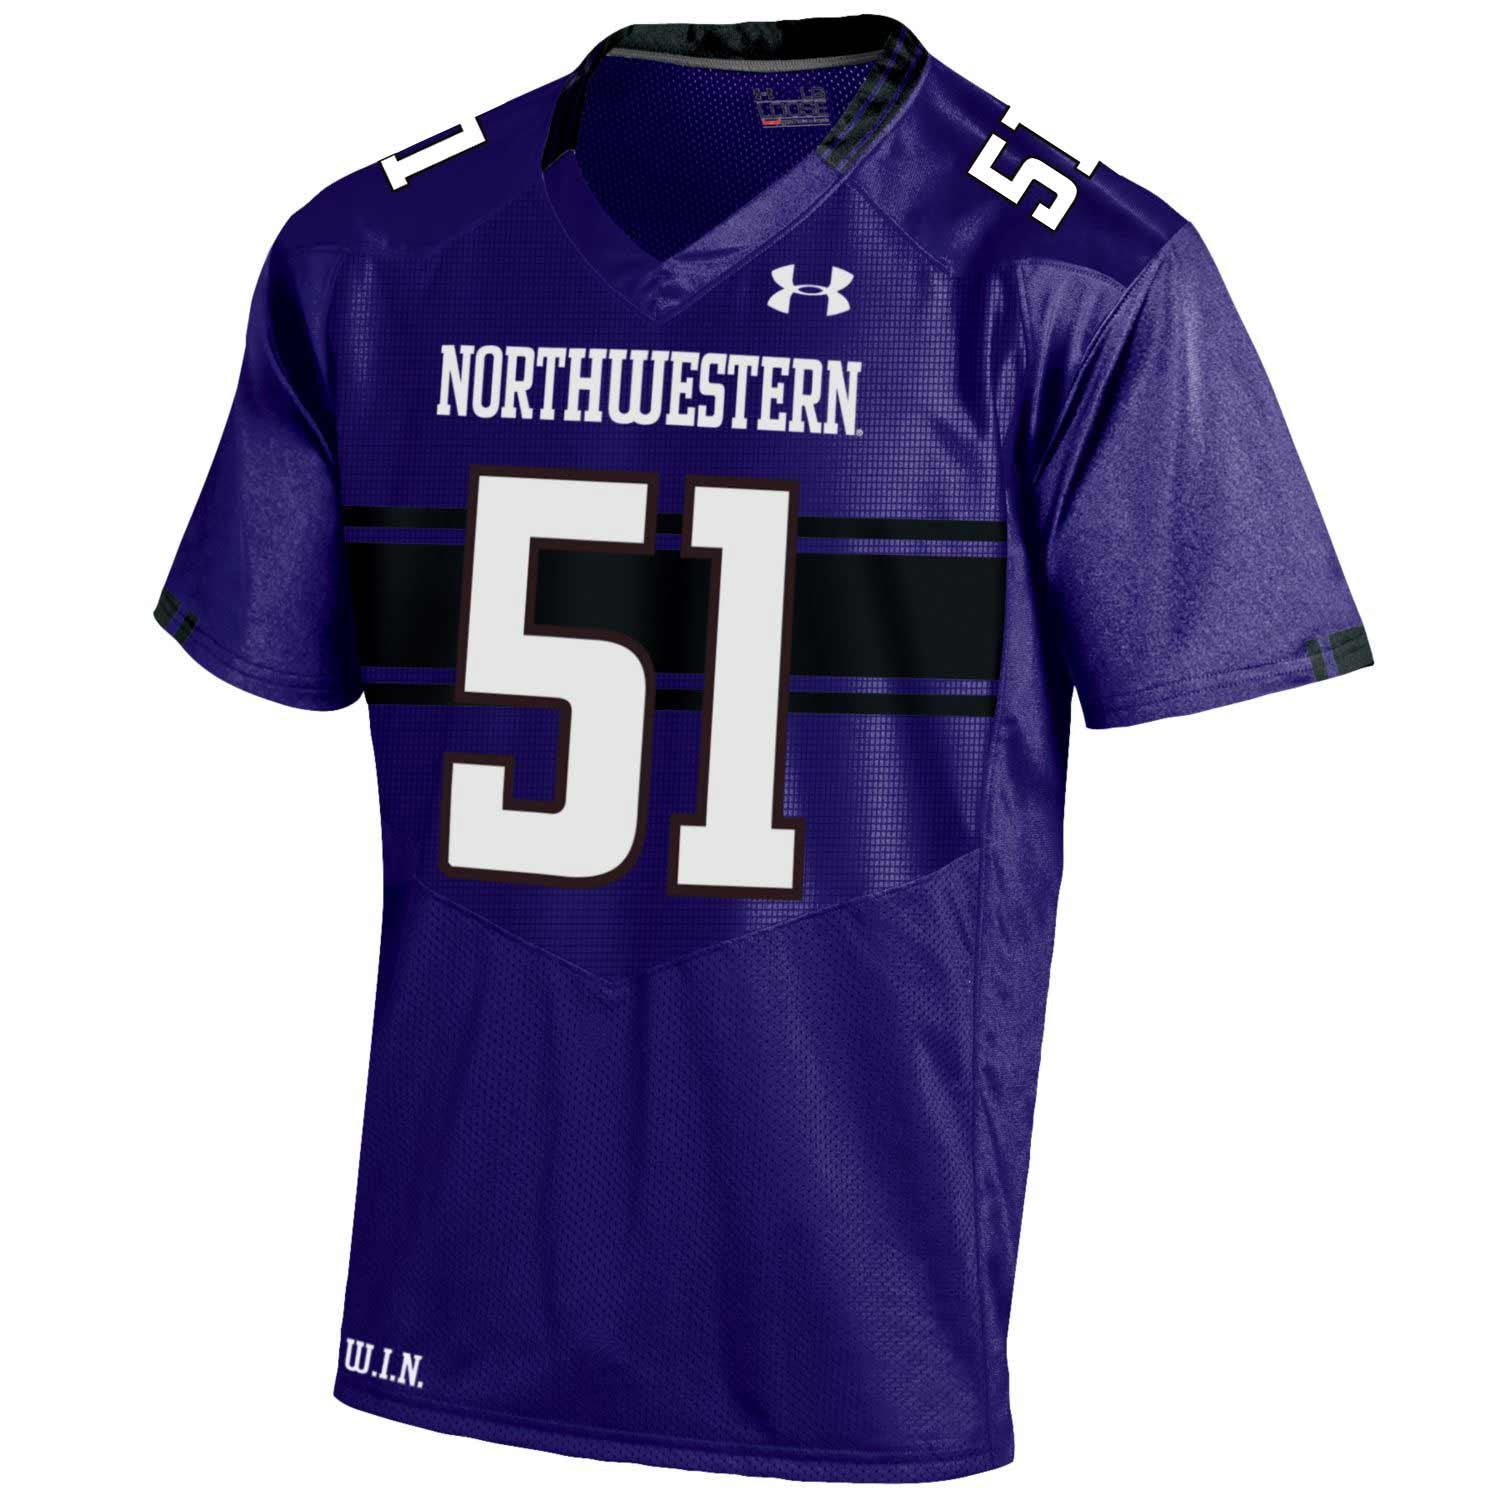 newest 163c2 6a09c Northwestern Wildcats Under Armour® Adult Football Replica Jersey - Purple -